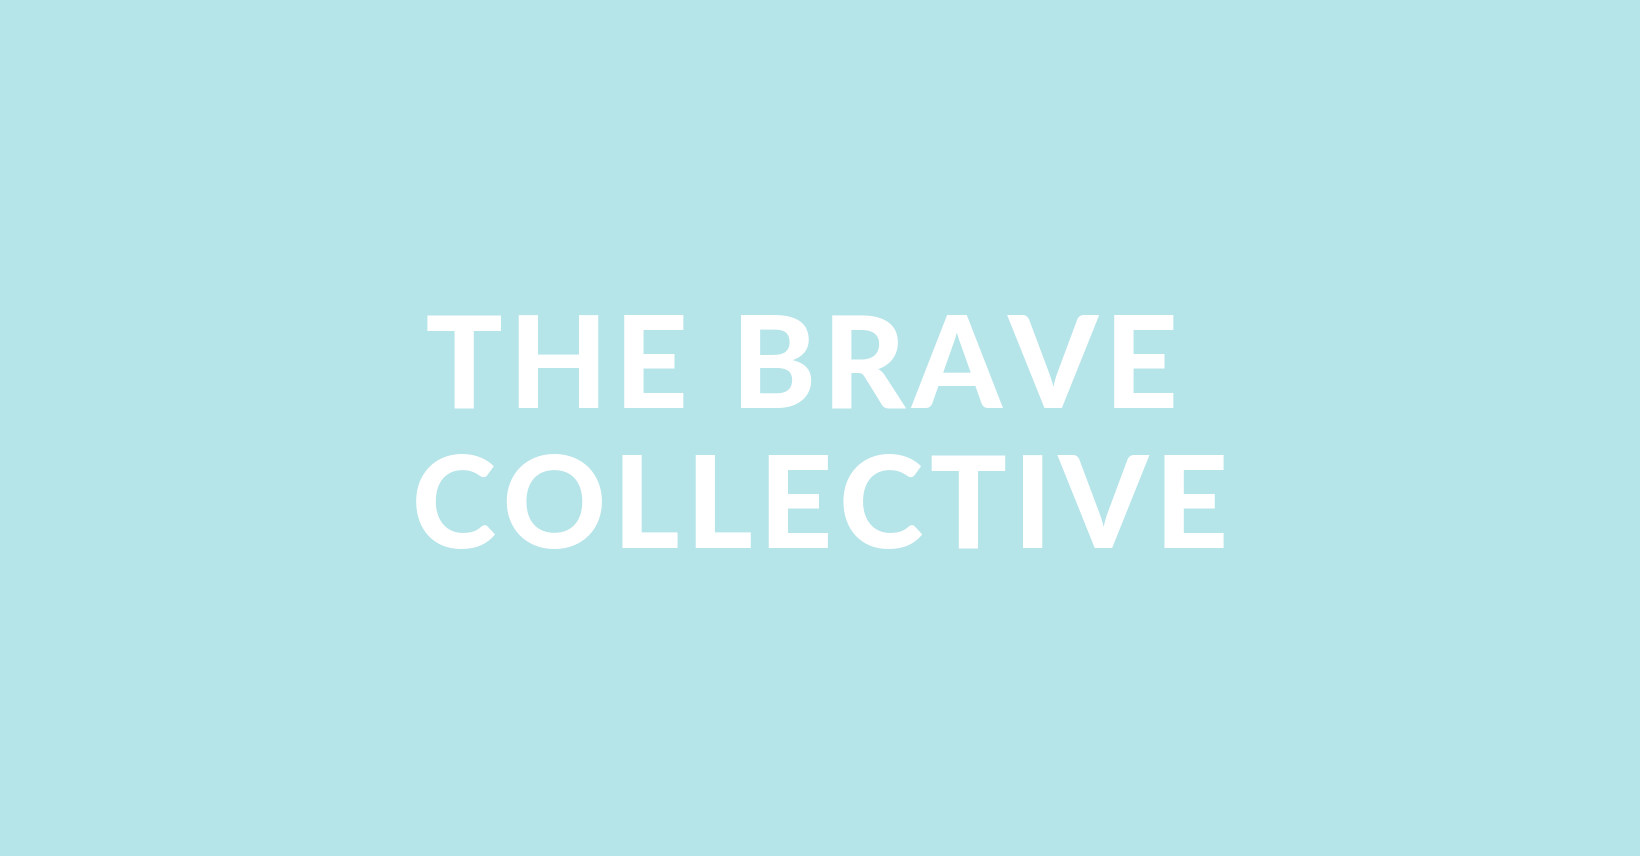 THE BRAVE COLLECTIVE (7).png